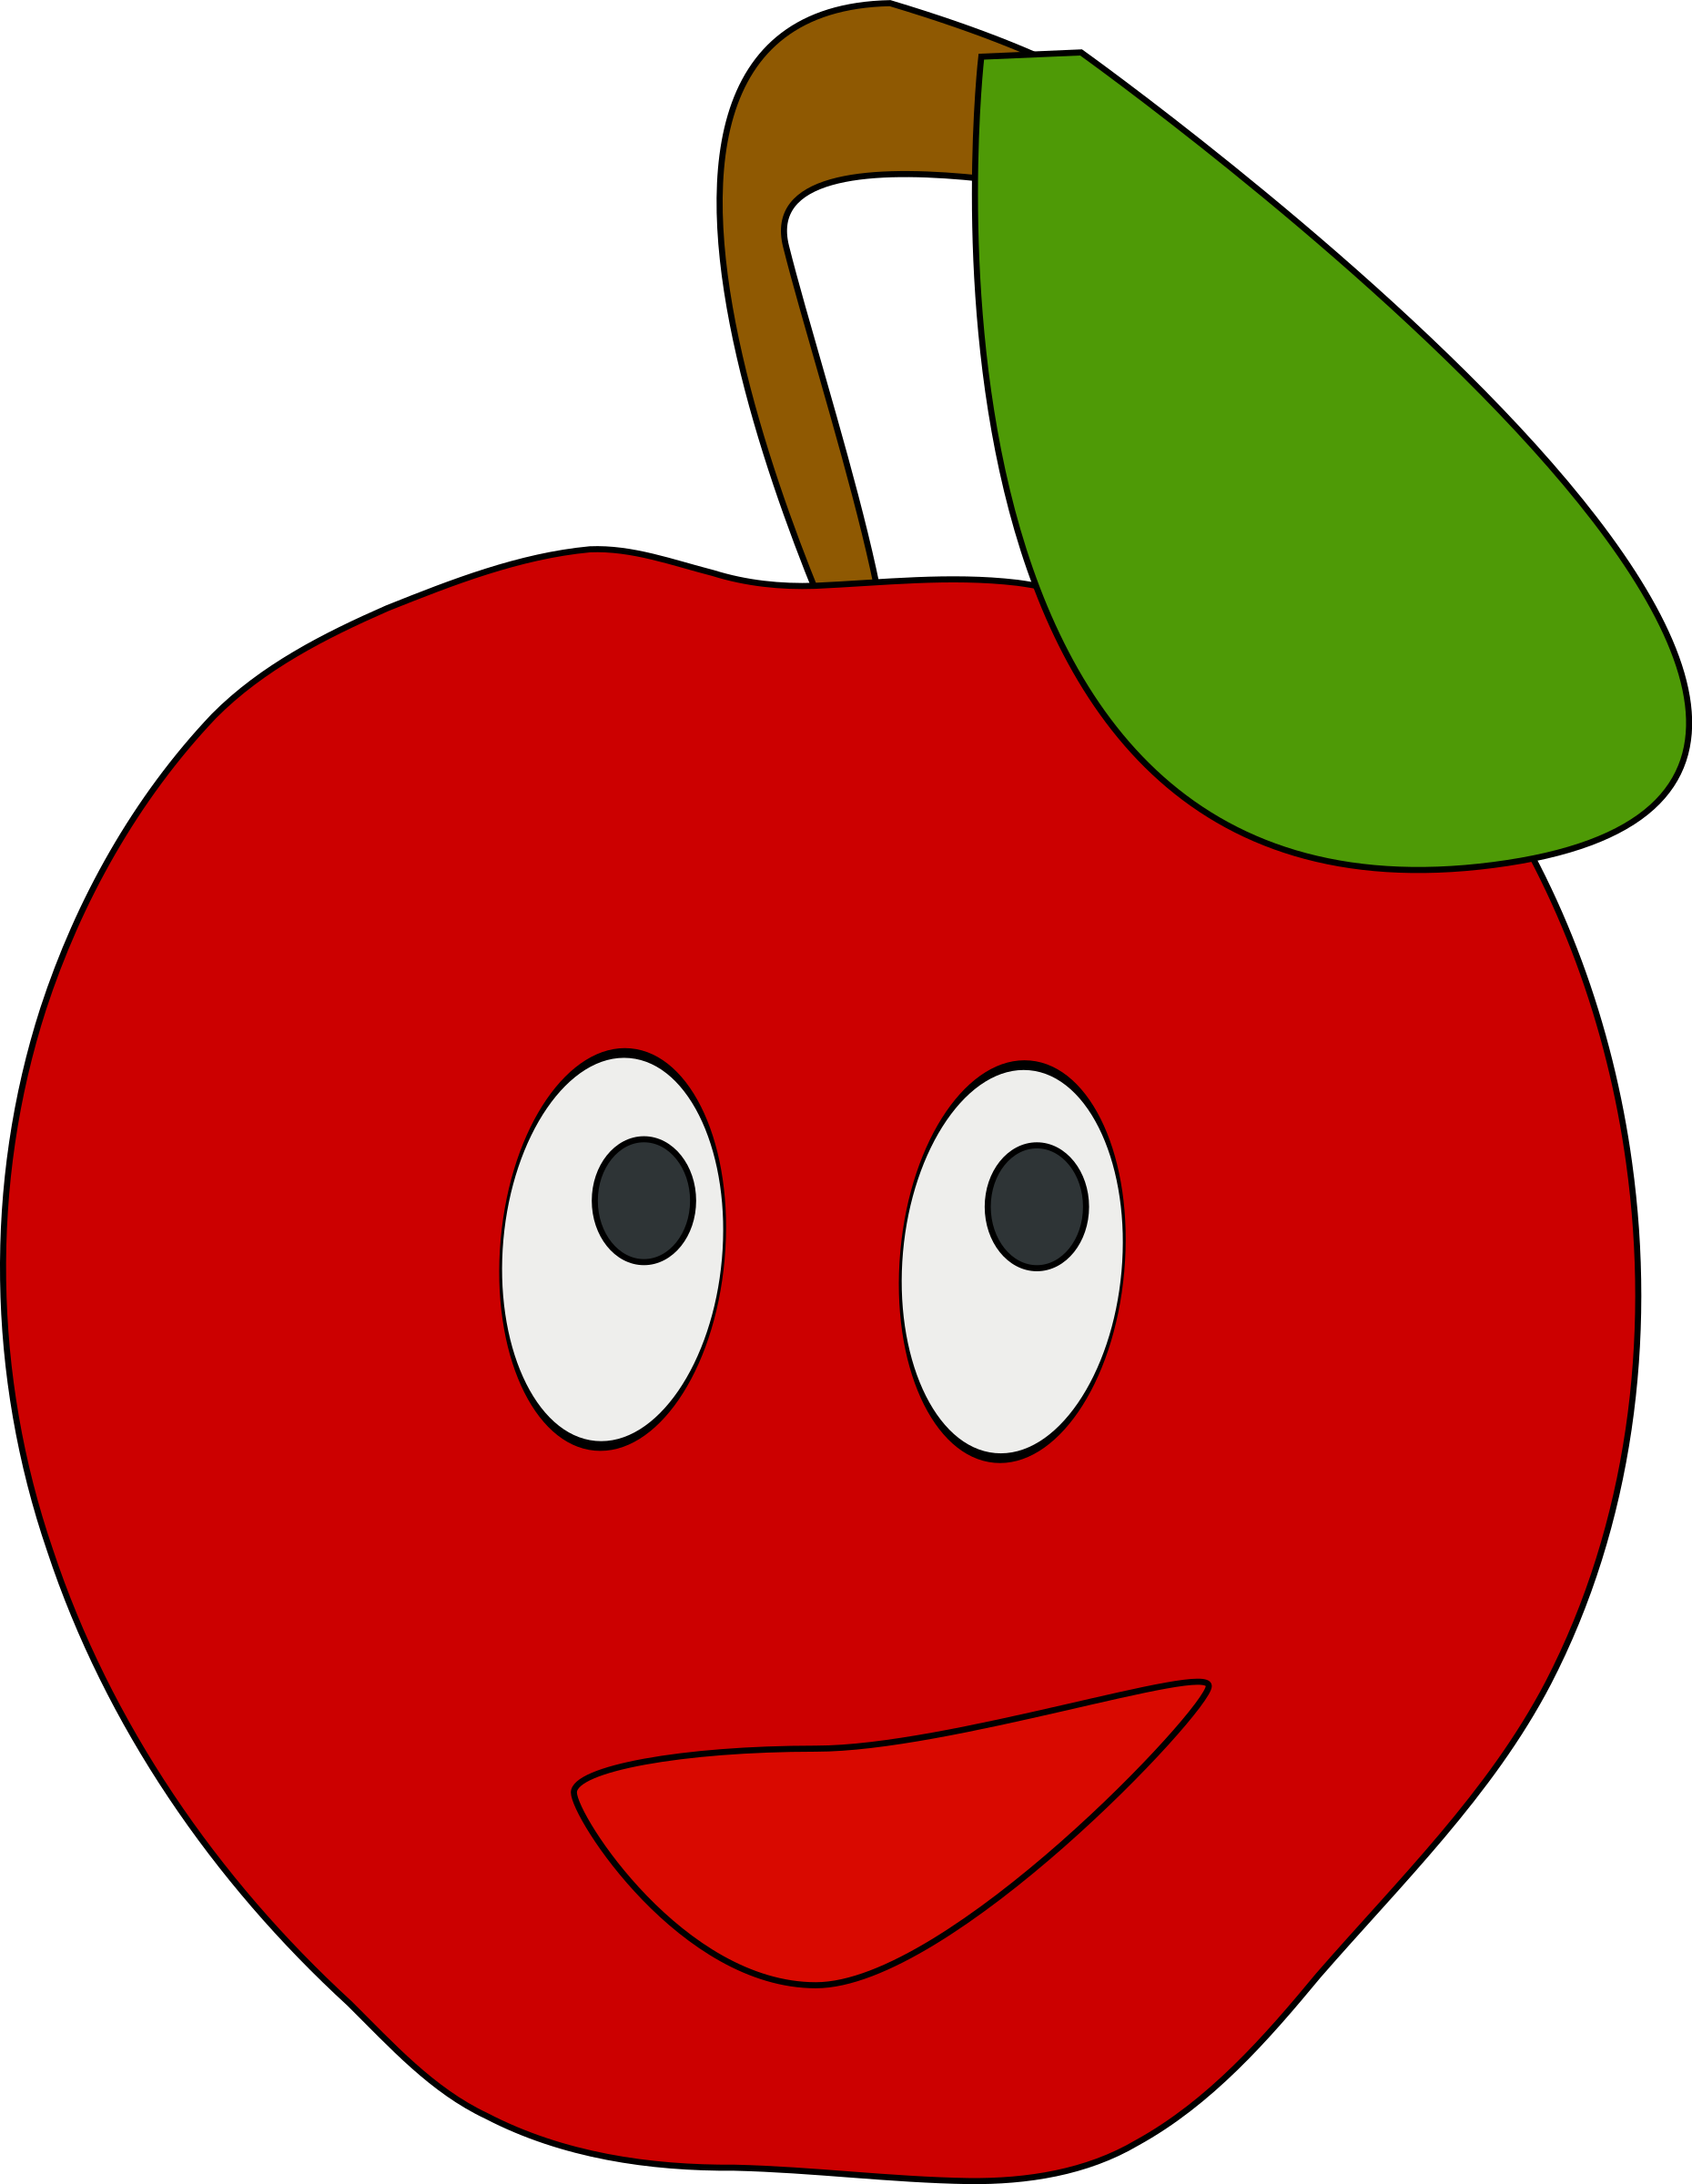 Apple monogram clipart svg free library Apple Emoji Clipart at GetDrawings.com | Free for personal use Apple ... svg free library